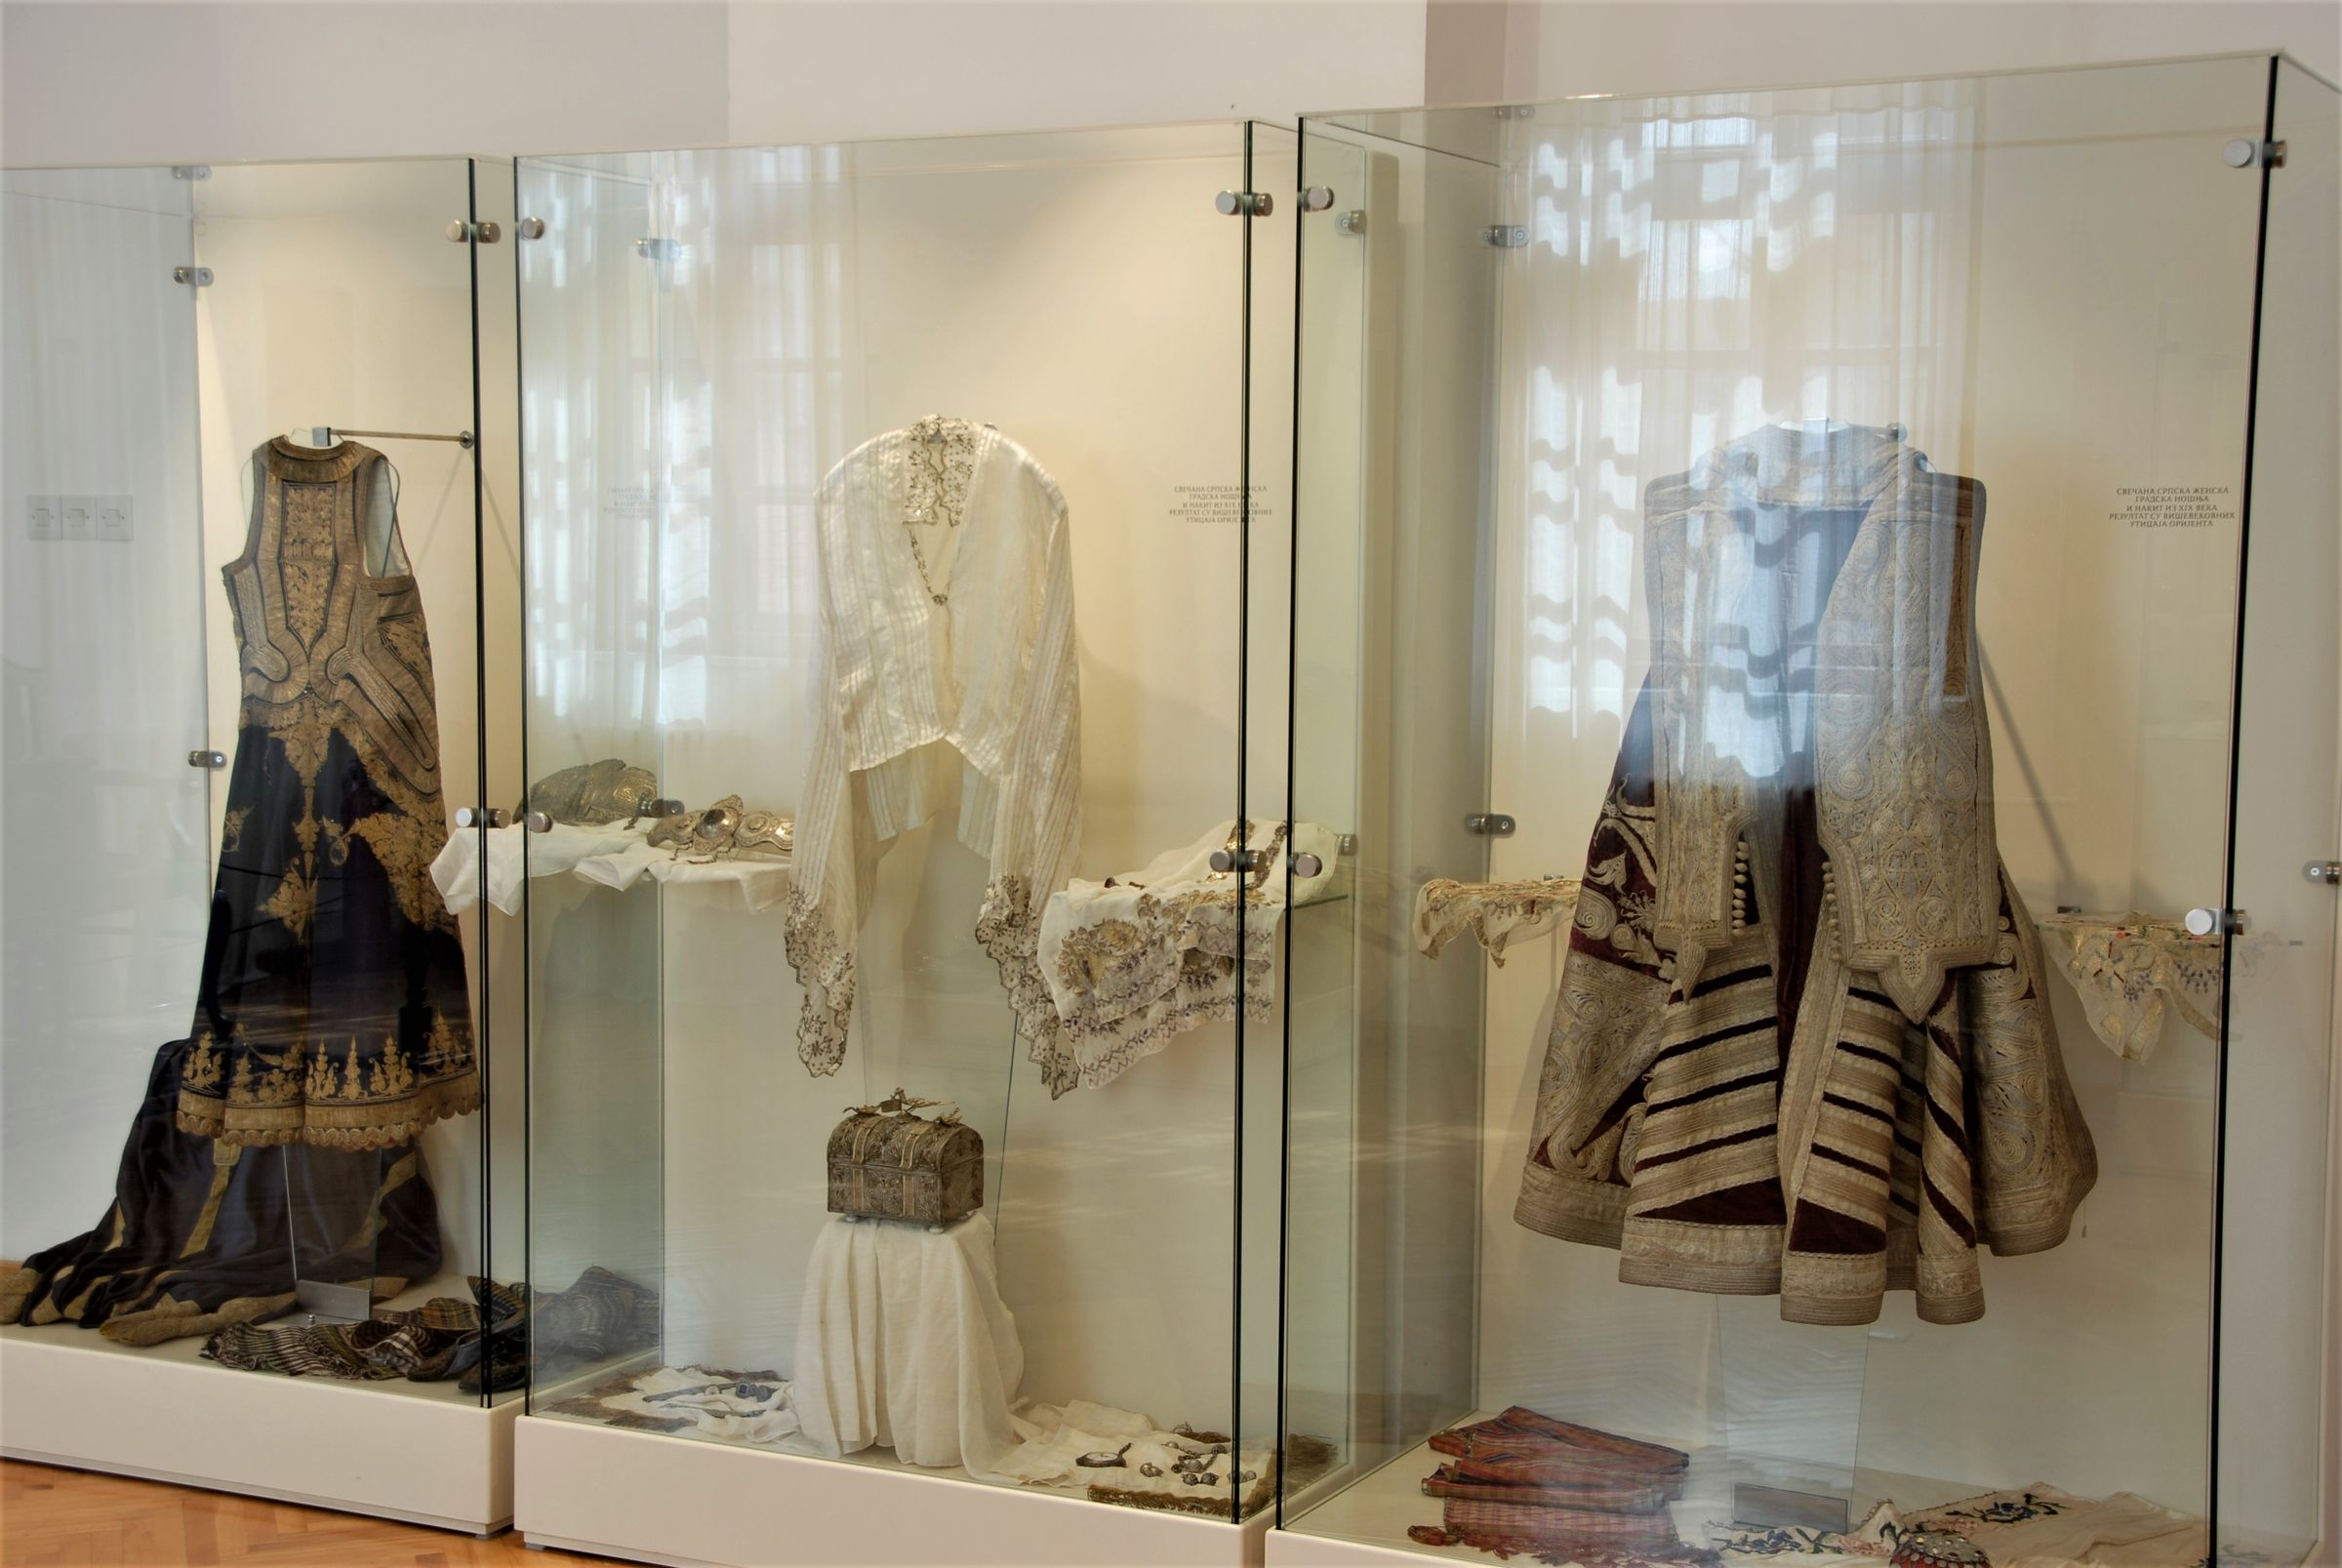 Display cases with women's costume from the 19th century